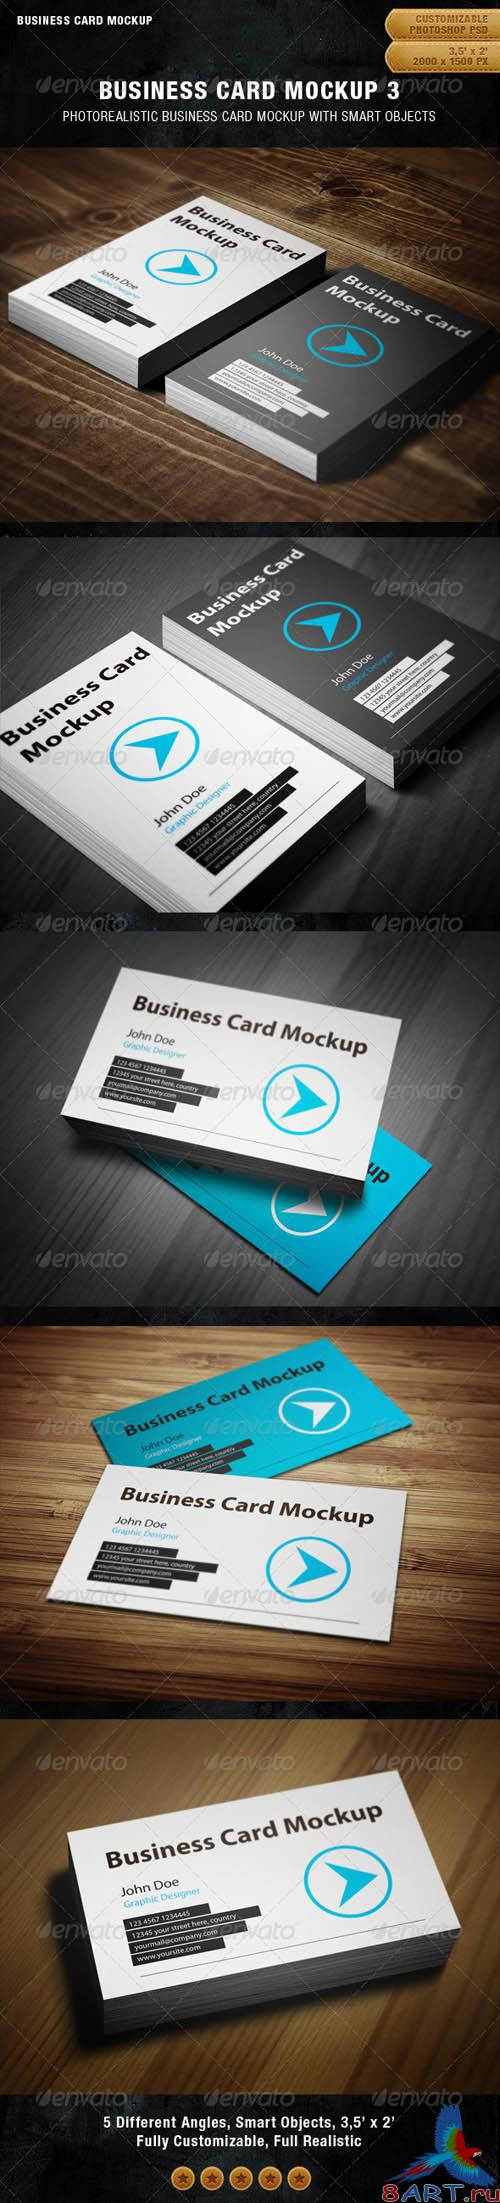 Business Card Mockup 3